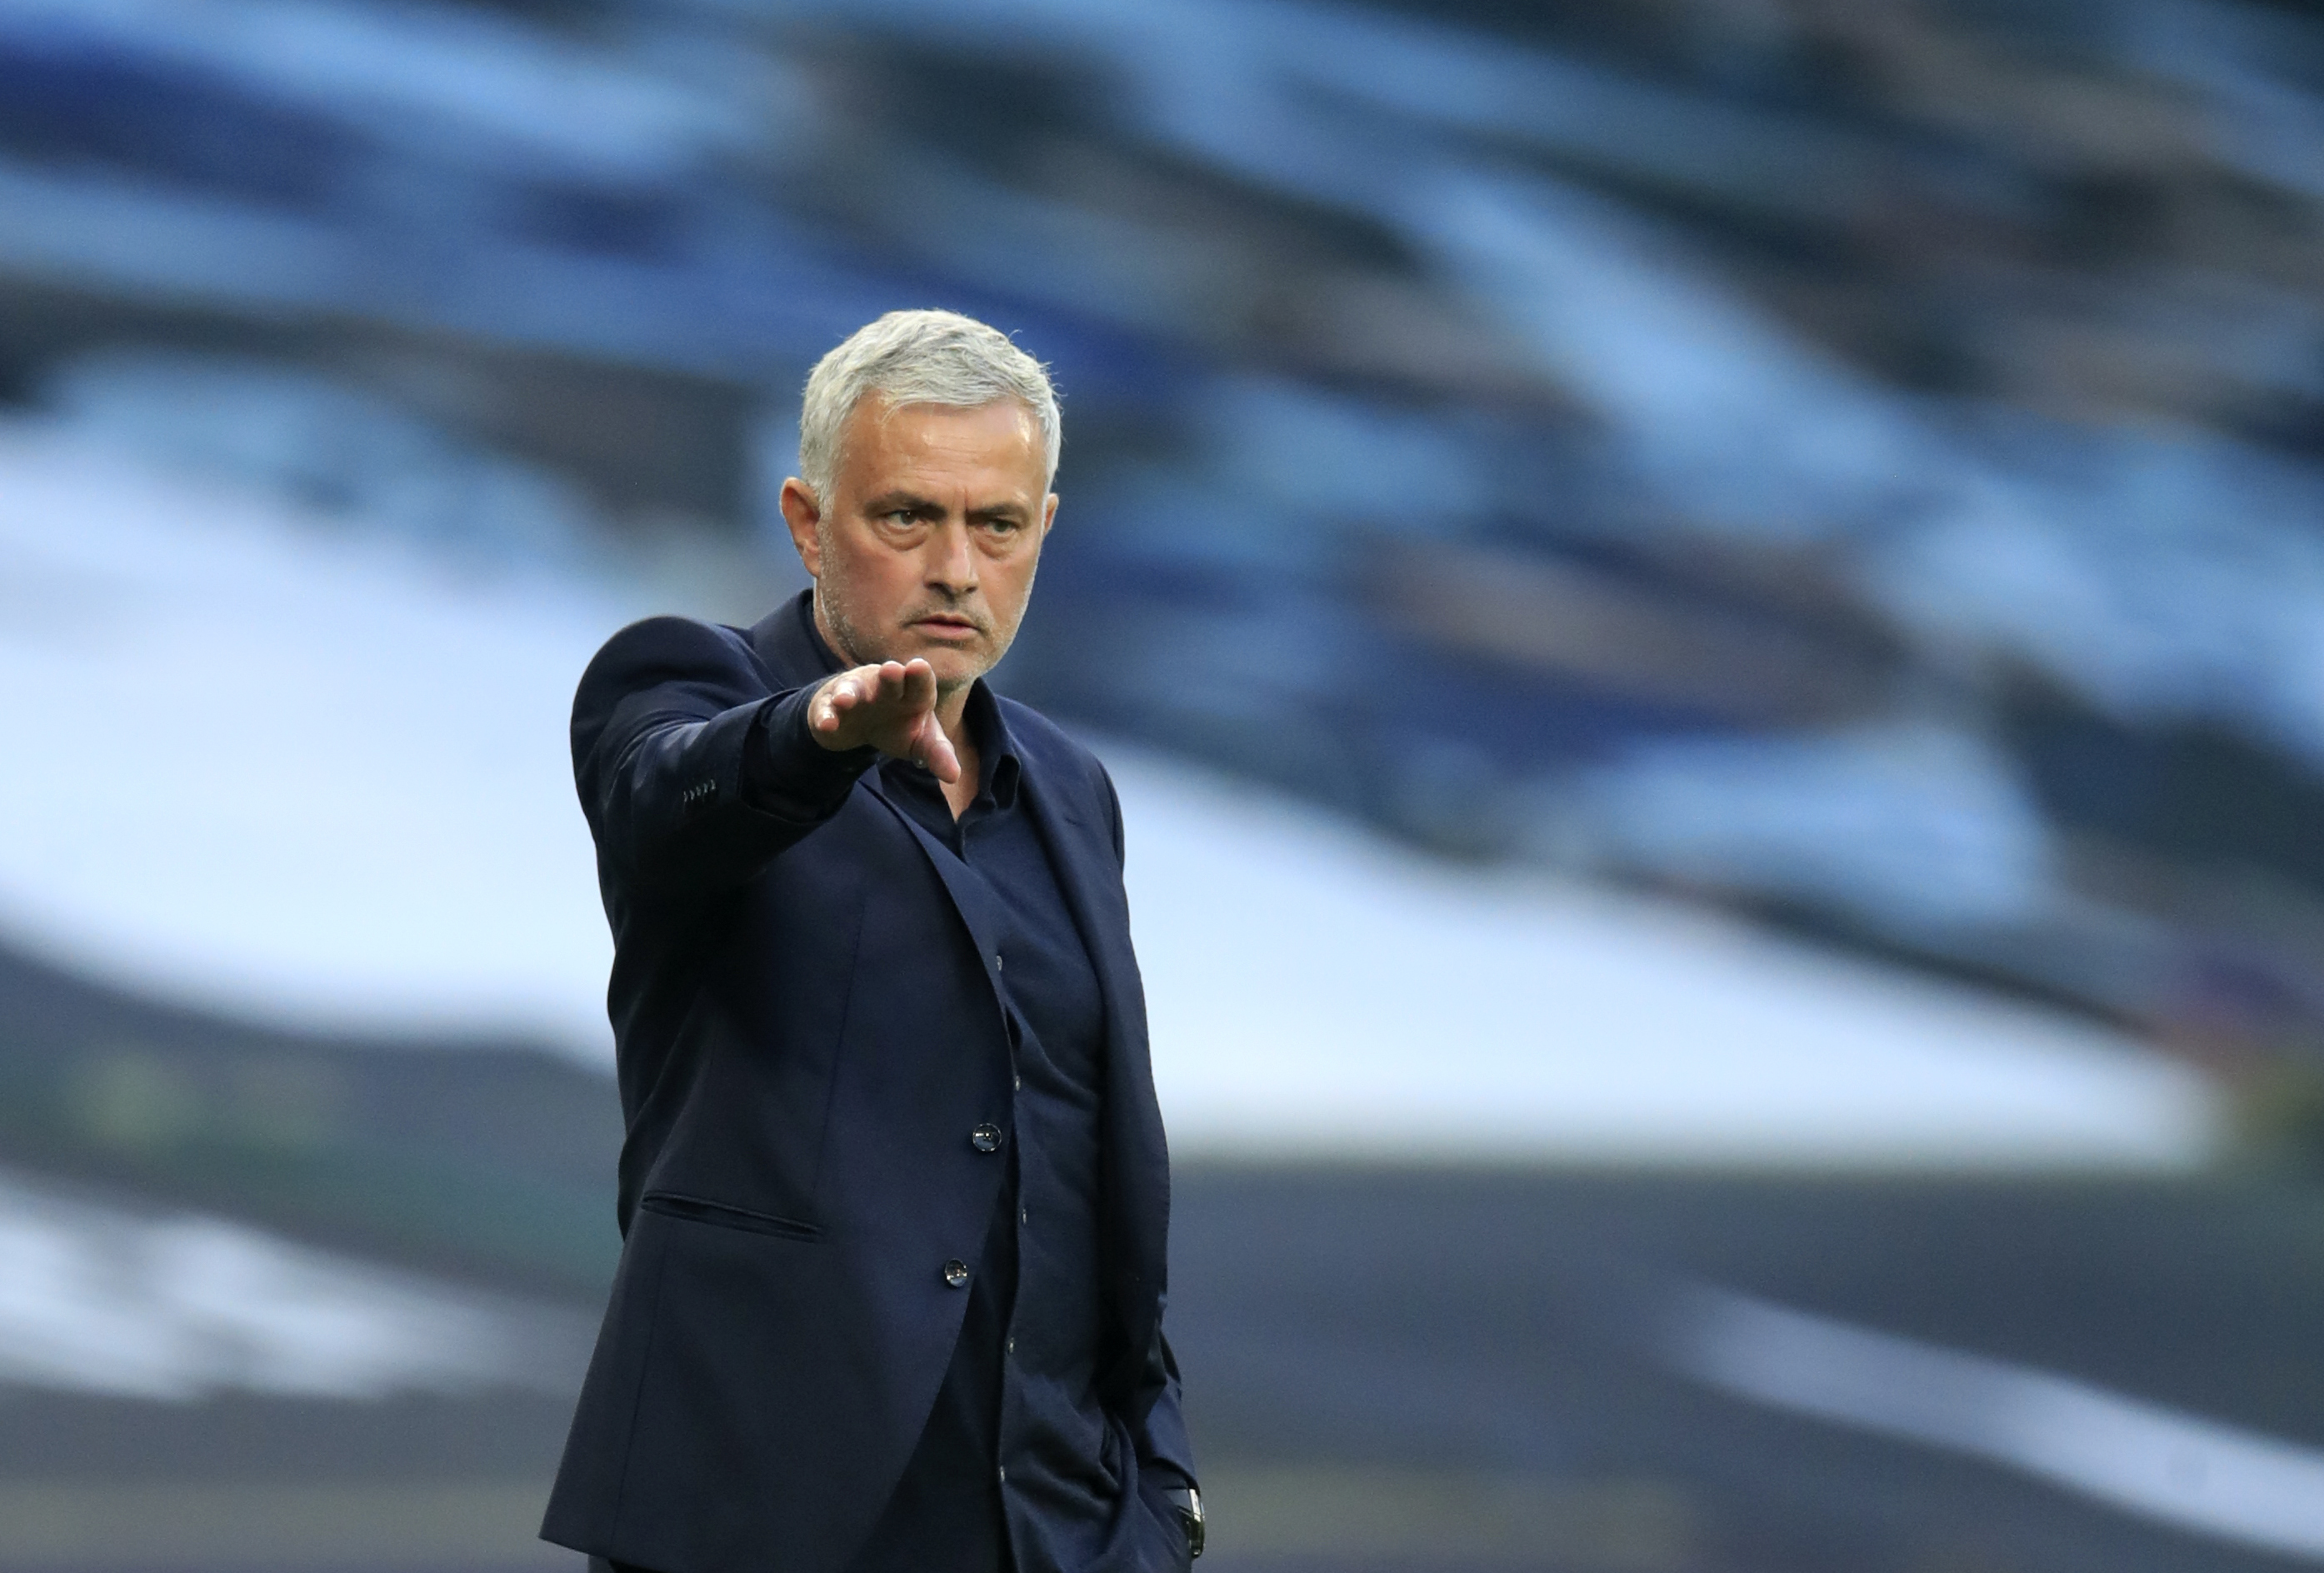 Tottenham's manager Jose Mourinho gives instructions to his players during the English Premier League soccer match between Tottenham Hotspur and Everton at the Tottenham Hotspur Stadium in London, Sunday, Sept. 13, 2020. (Adam Davy/Pool via AP)